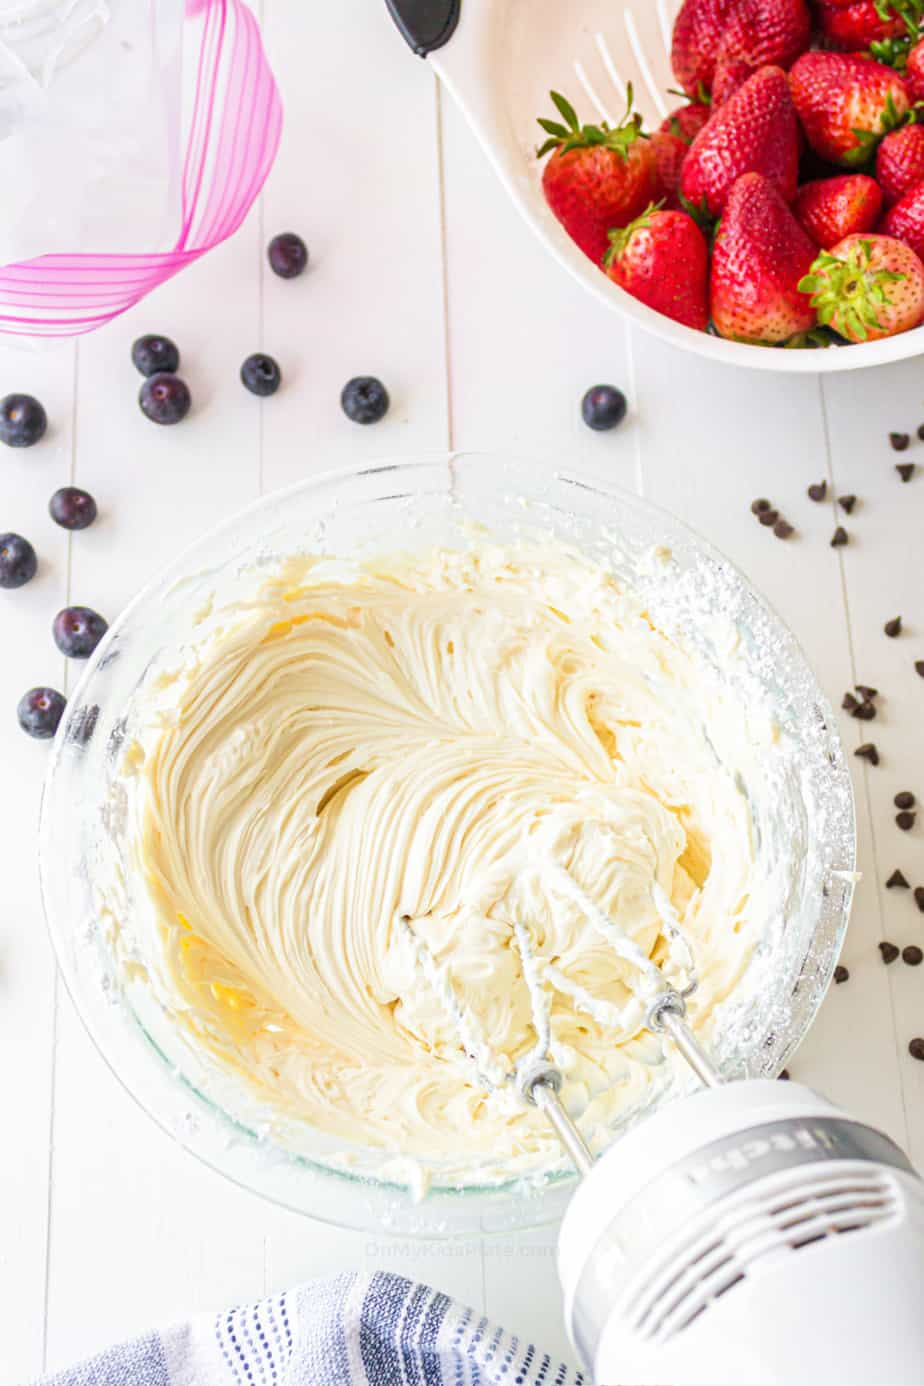 Cream cheese filling being whipped in a bowl with a hand mixer.